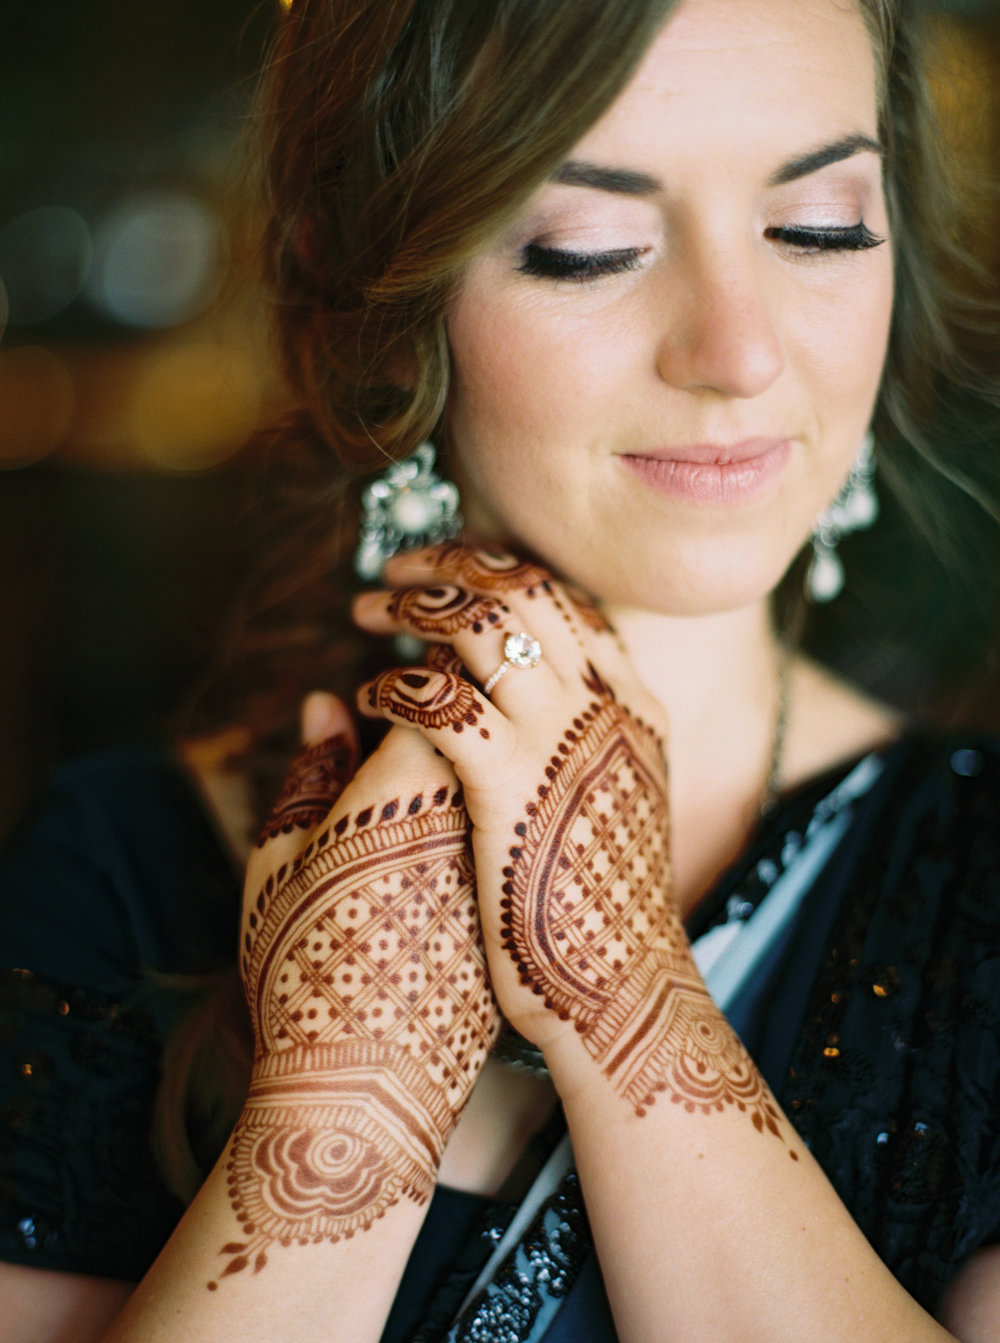 Wahoo_Grill_Atlanta_Indian_Wedding_Abigail_Malone_Photgoraphy_FIlm-127.jpg